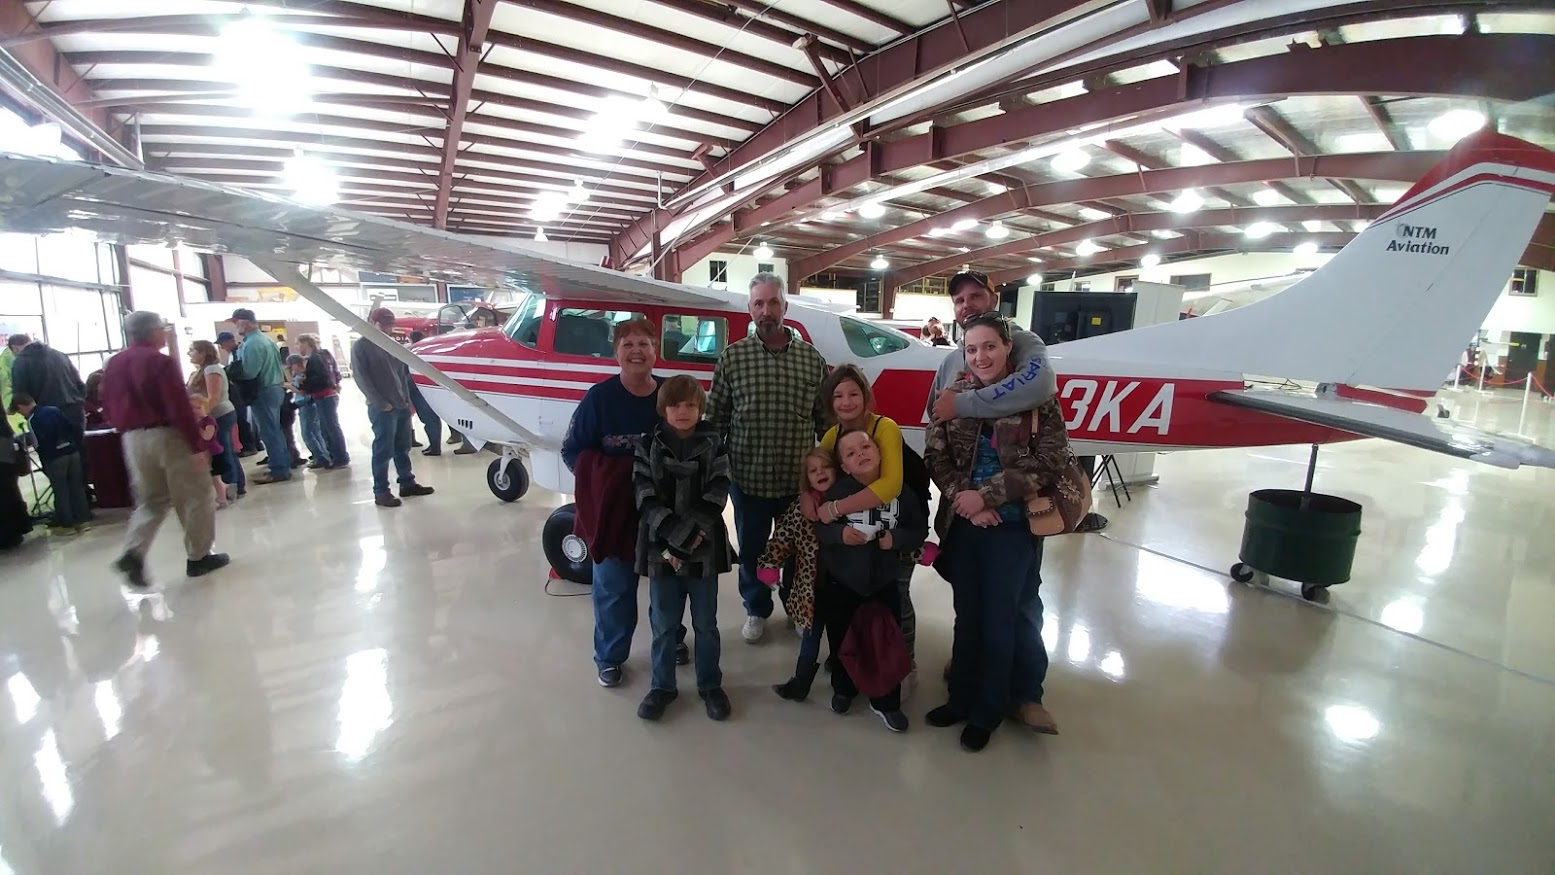 2017 02 04 new tribes mission aviation open house2